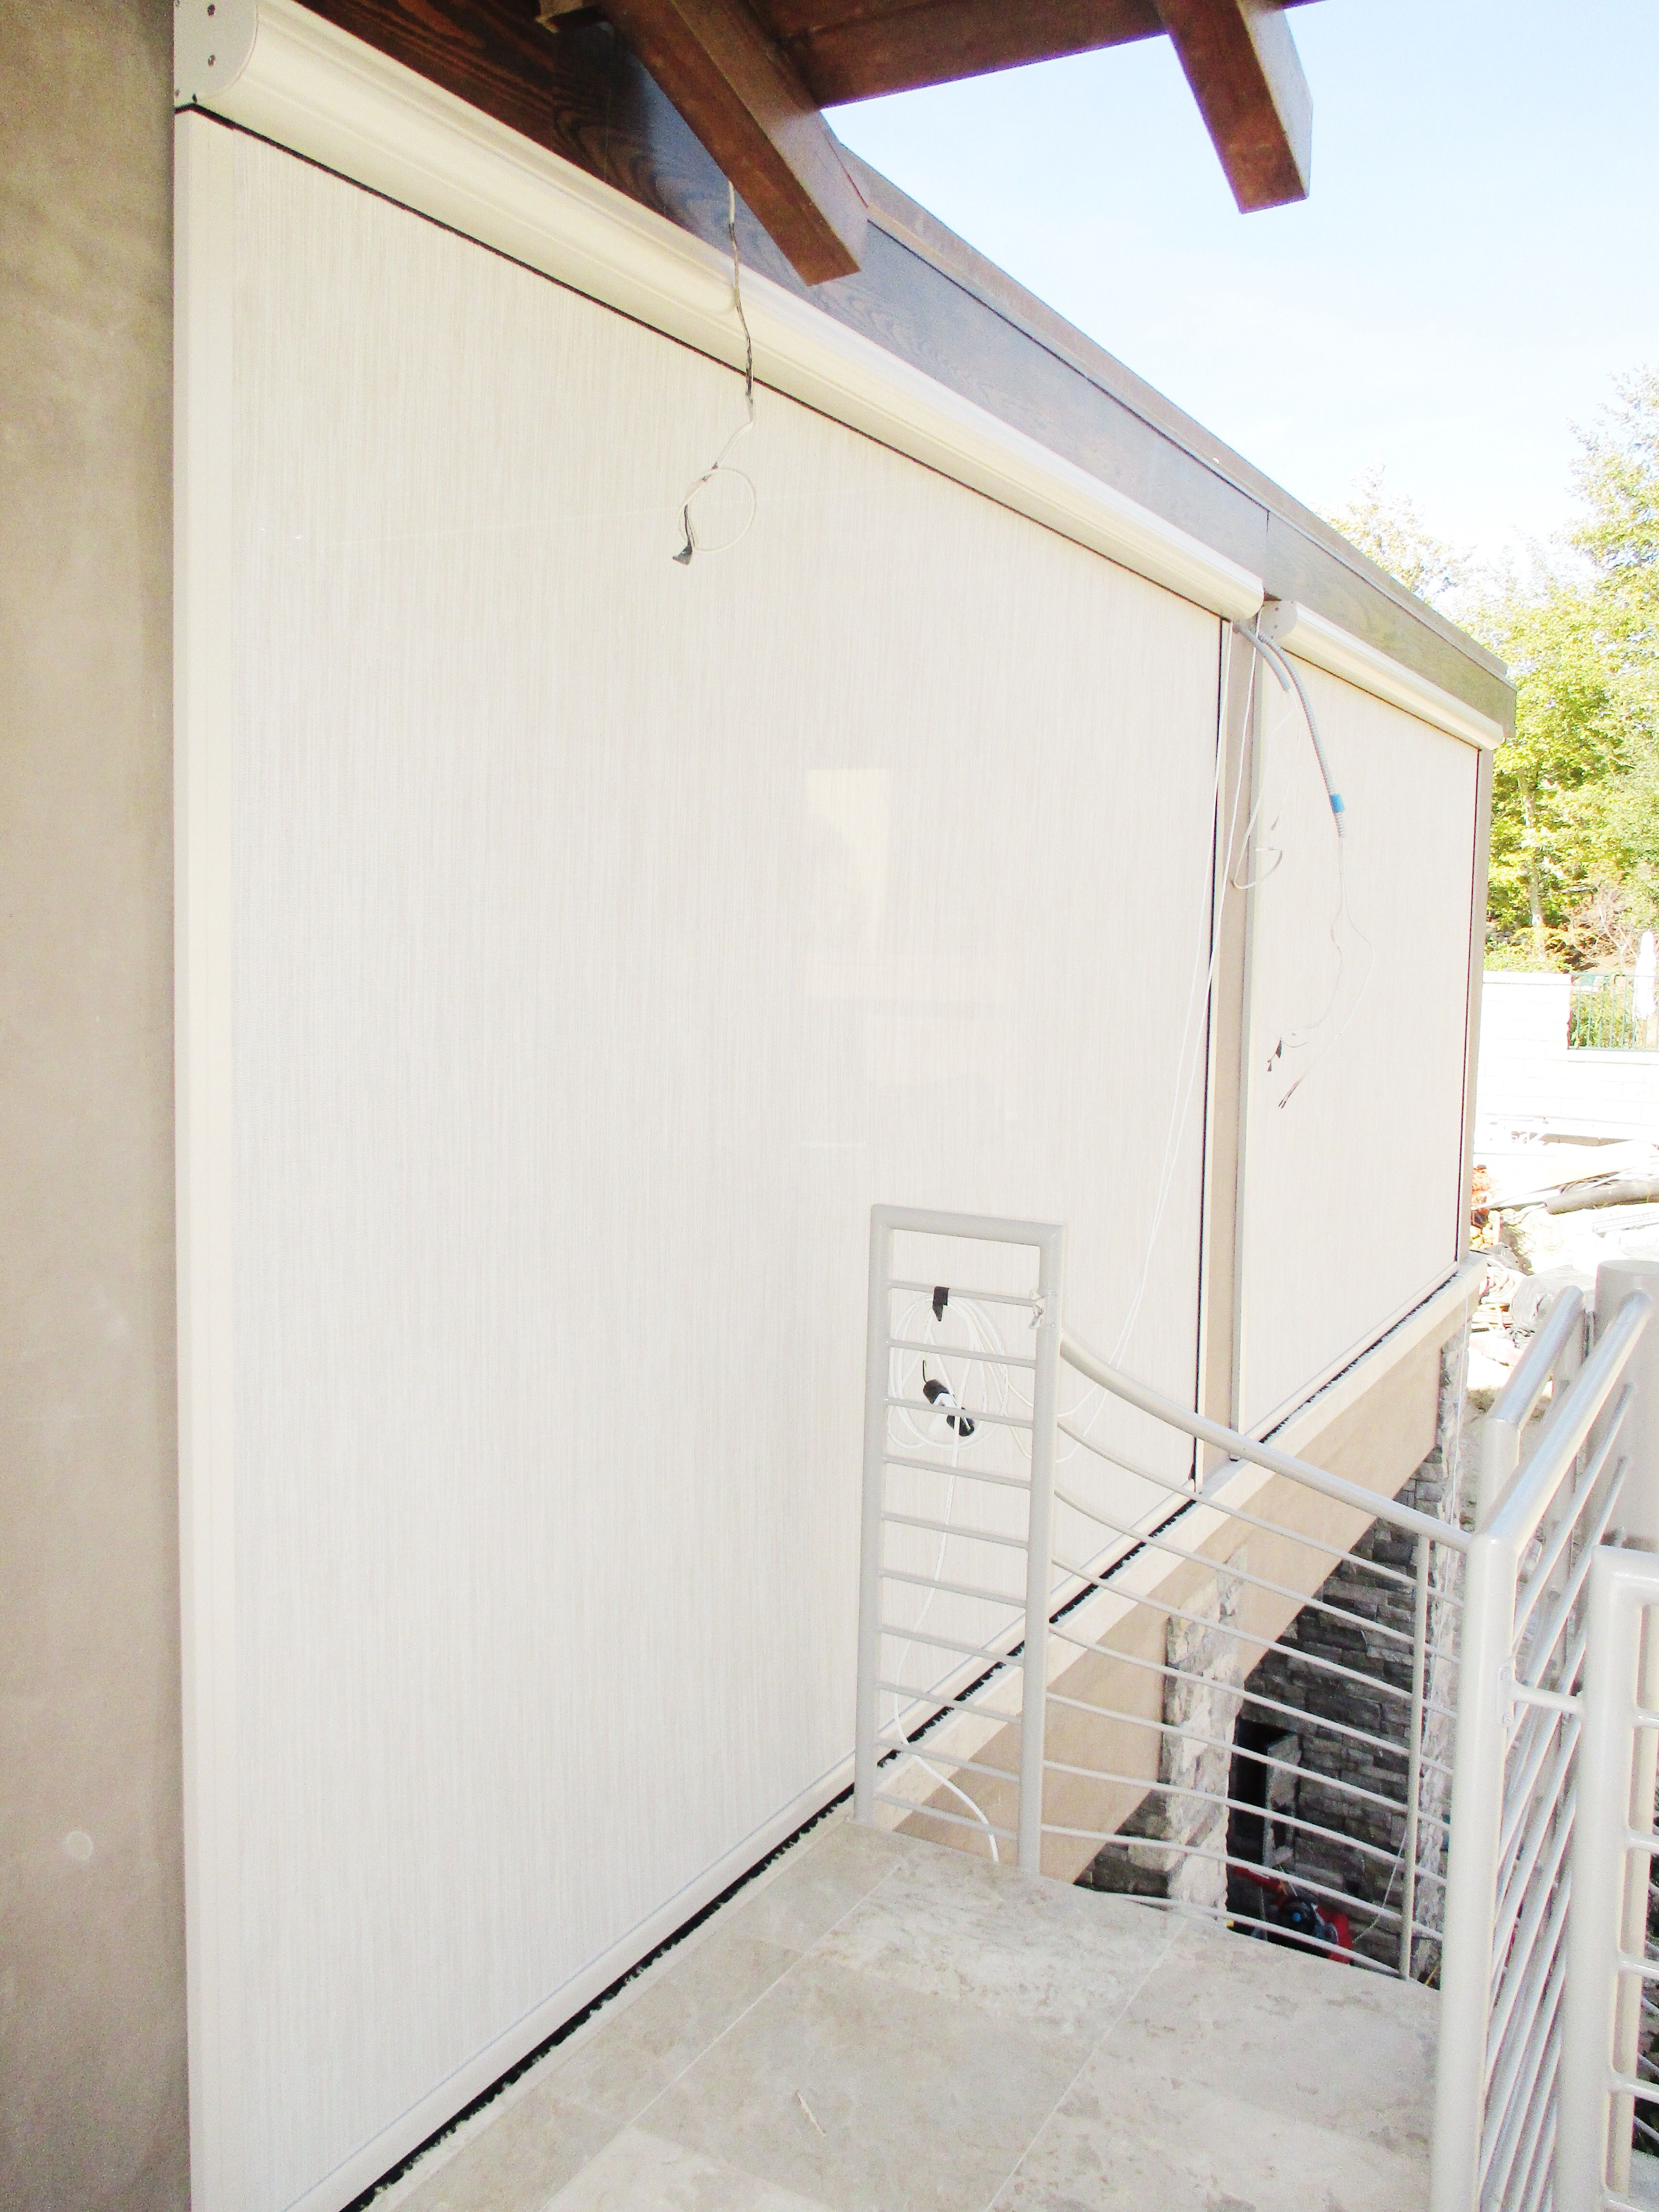 Check Out This Motorized Power Screen With Desert Sand Colored Frame And 80 Solar Screen Installed In Solar Screens Retractable Screen Door Shutters Exterior